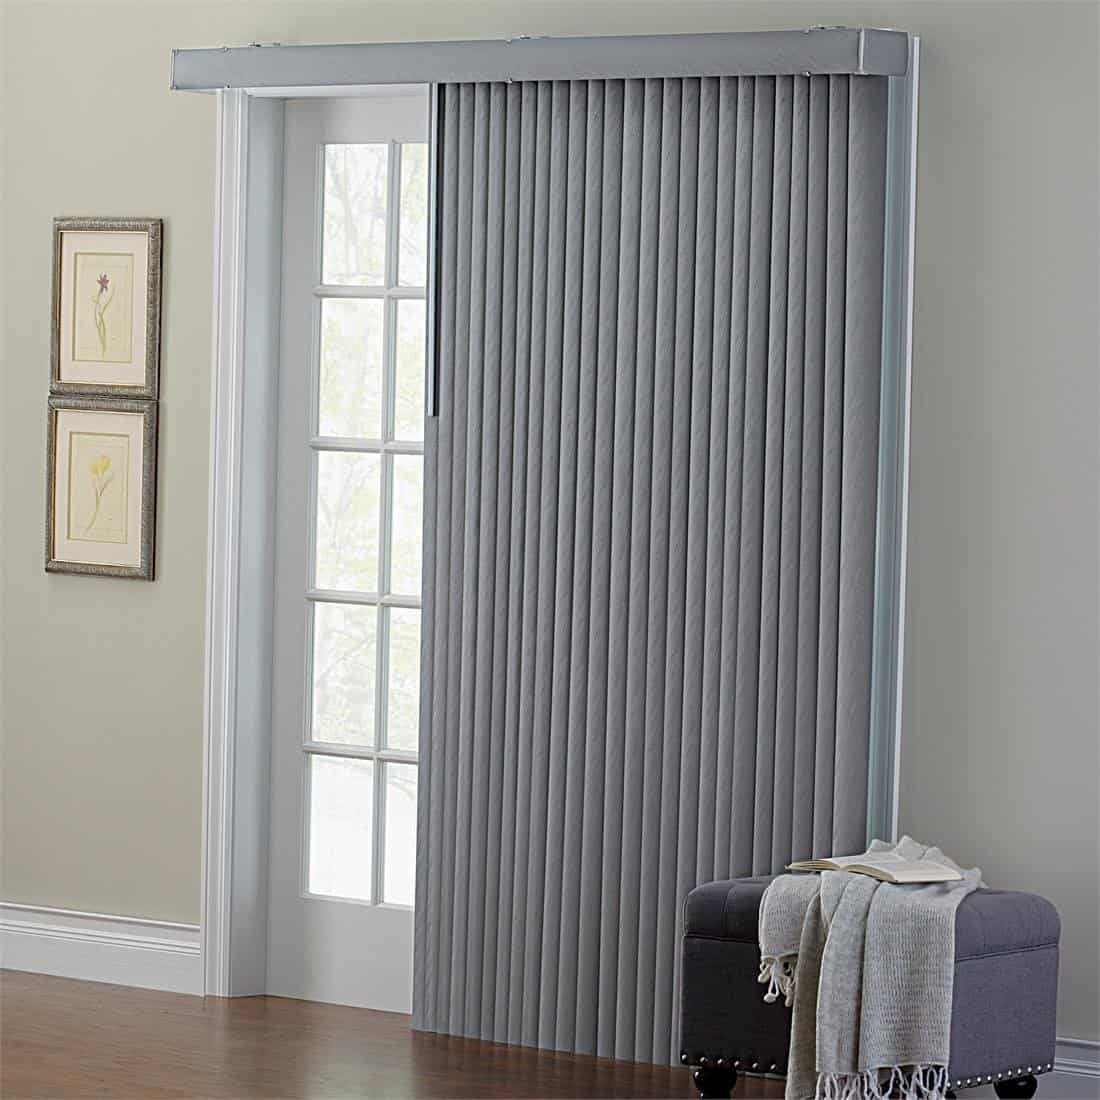 wholesale kitchen window awesome class sliding vertical drapes thermal blindsi curtain with patio doors slider blackout top bedroom curtains blinds sale draperies one for insulated glass panel paneli door most